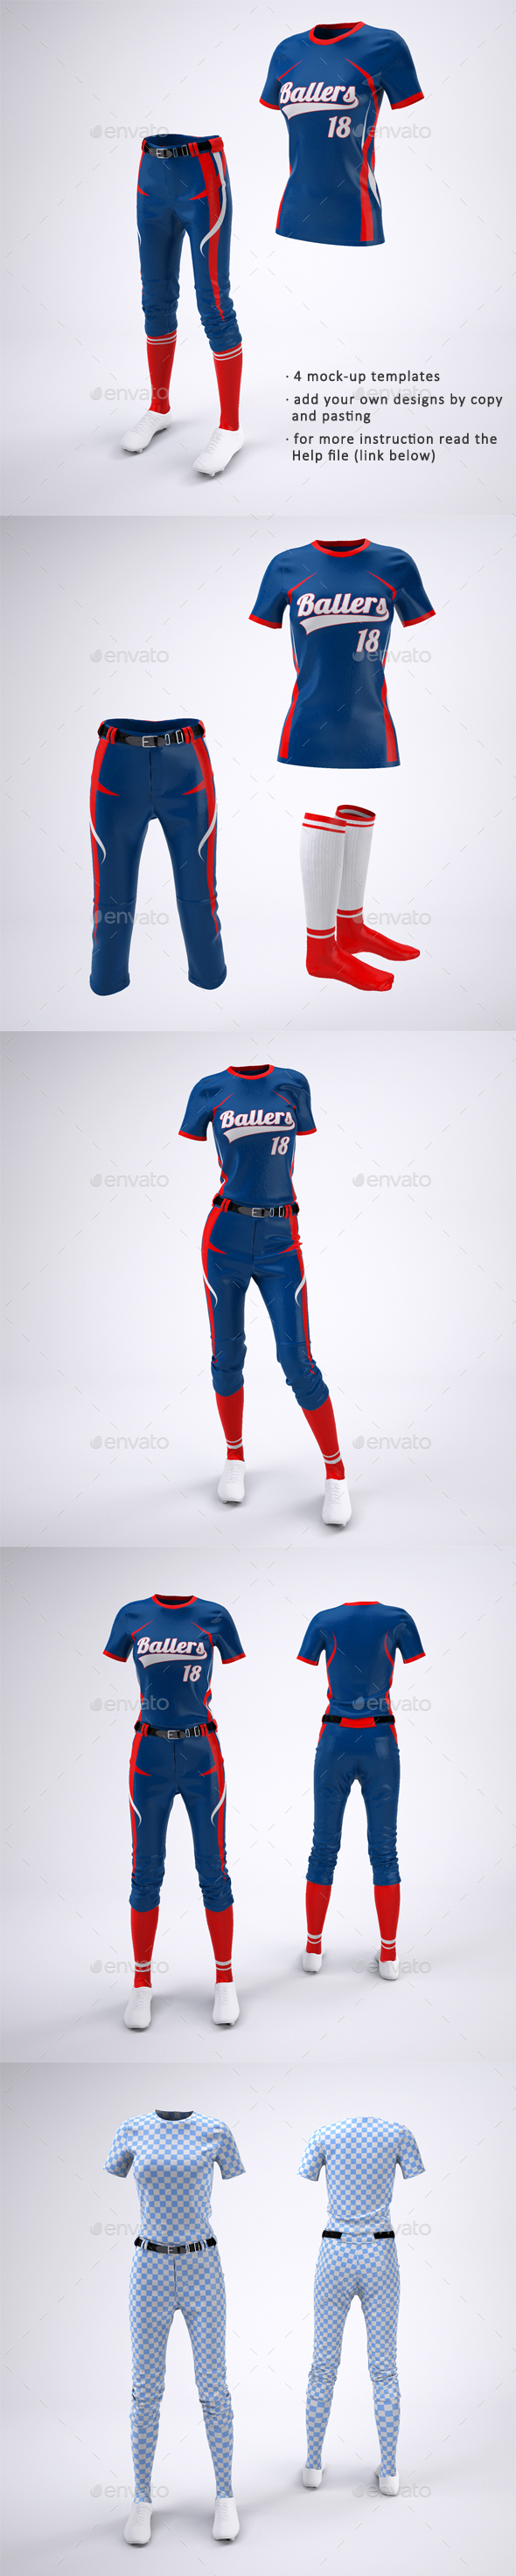 Women's Softball Jerseys and Uniform Mock-Up - Apparel Product Mock-Ups